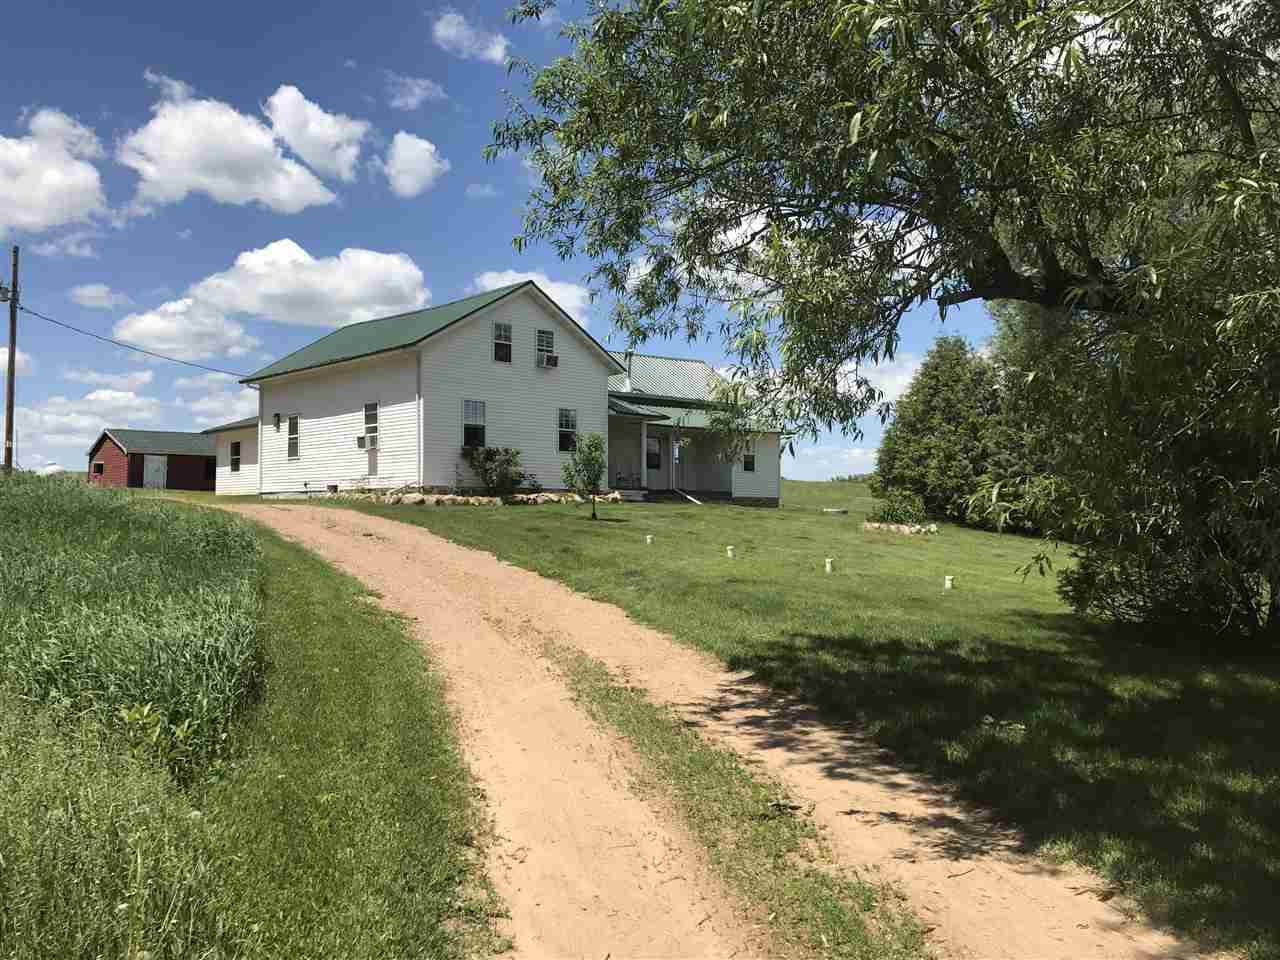 Hobby Farms For Sale in Portage County WI | Wisconsin MLS ...